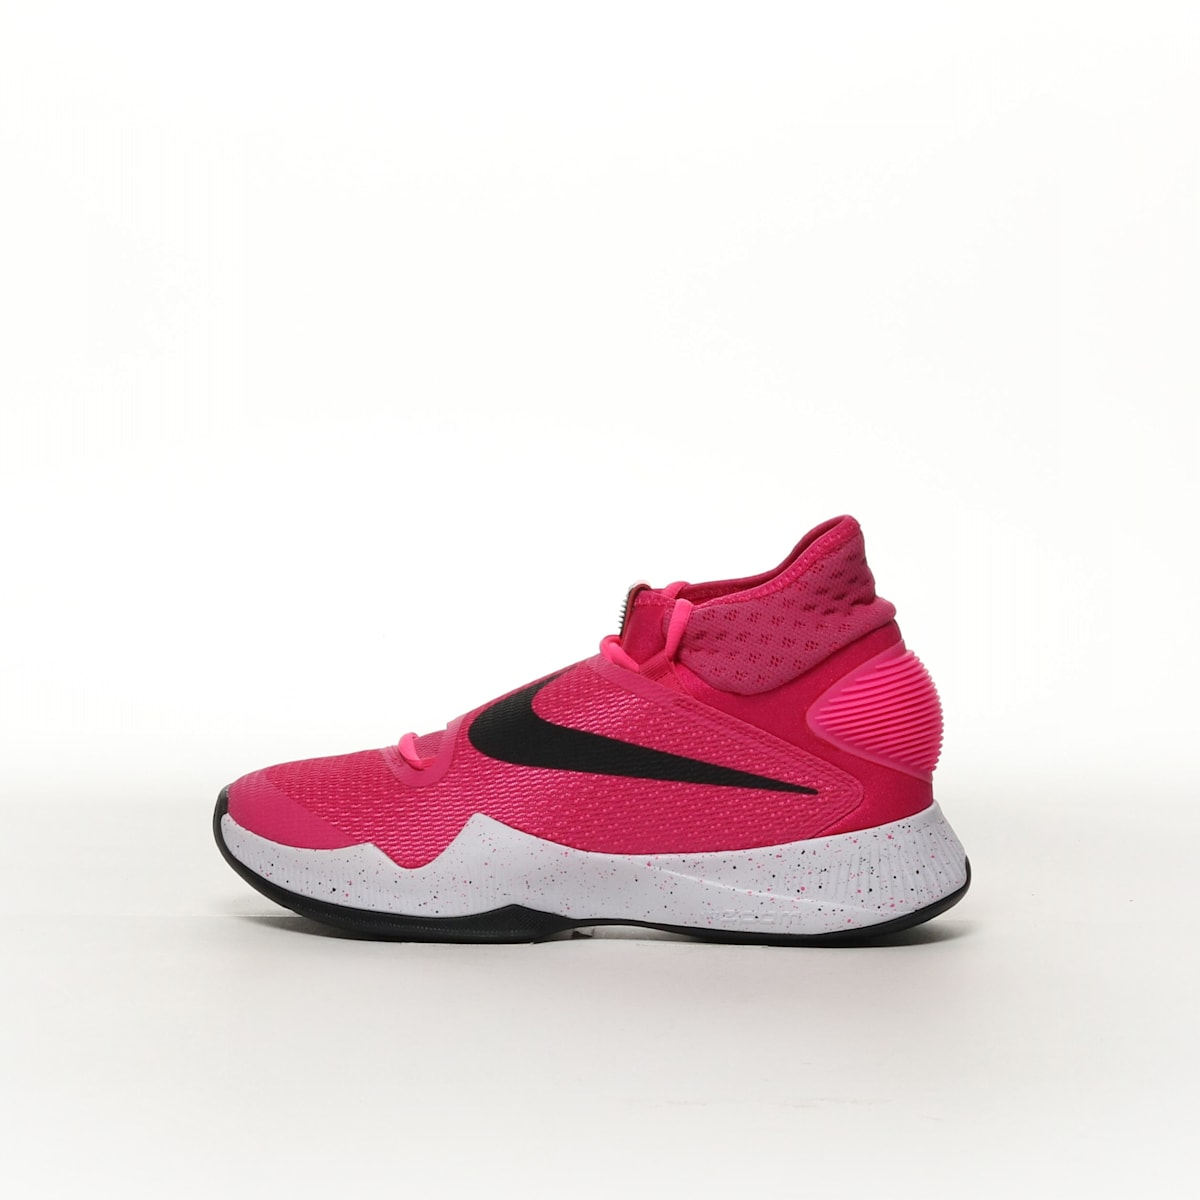 on sale 54a1d f2868 nike zoom hyperrev 2016 basketball ...